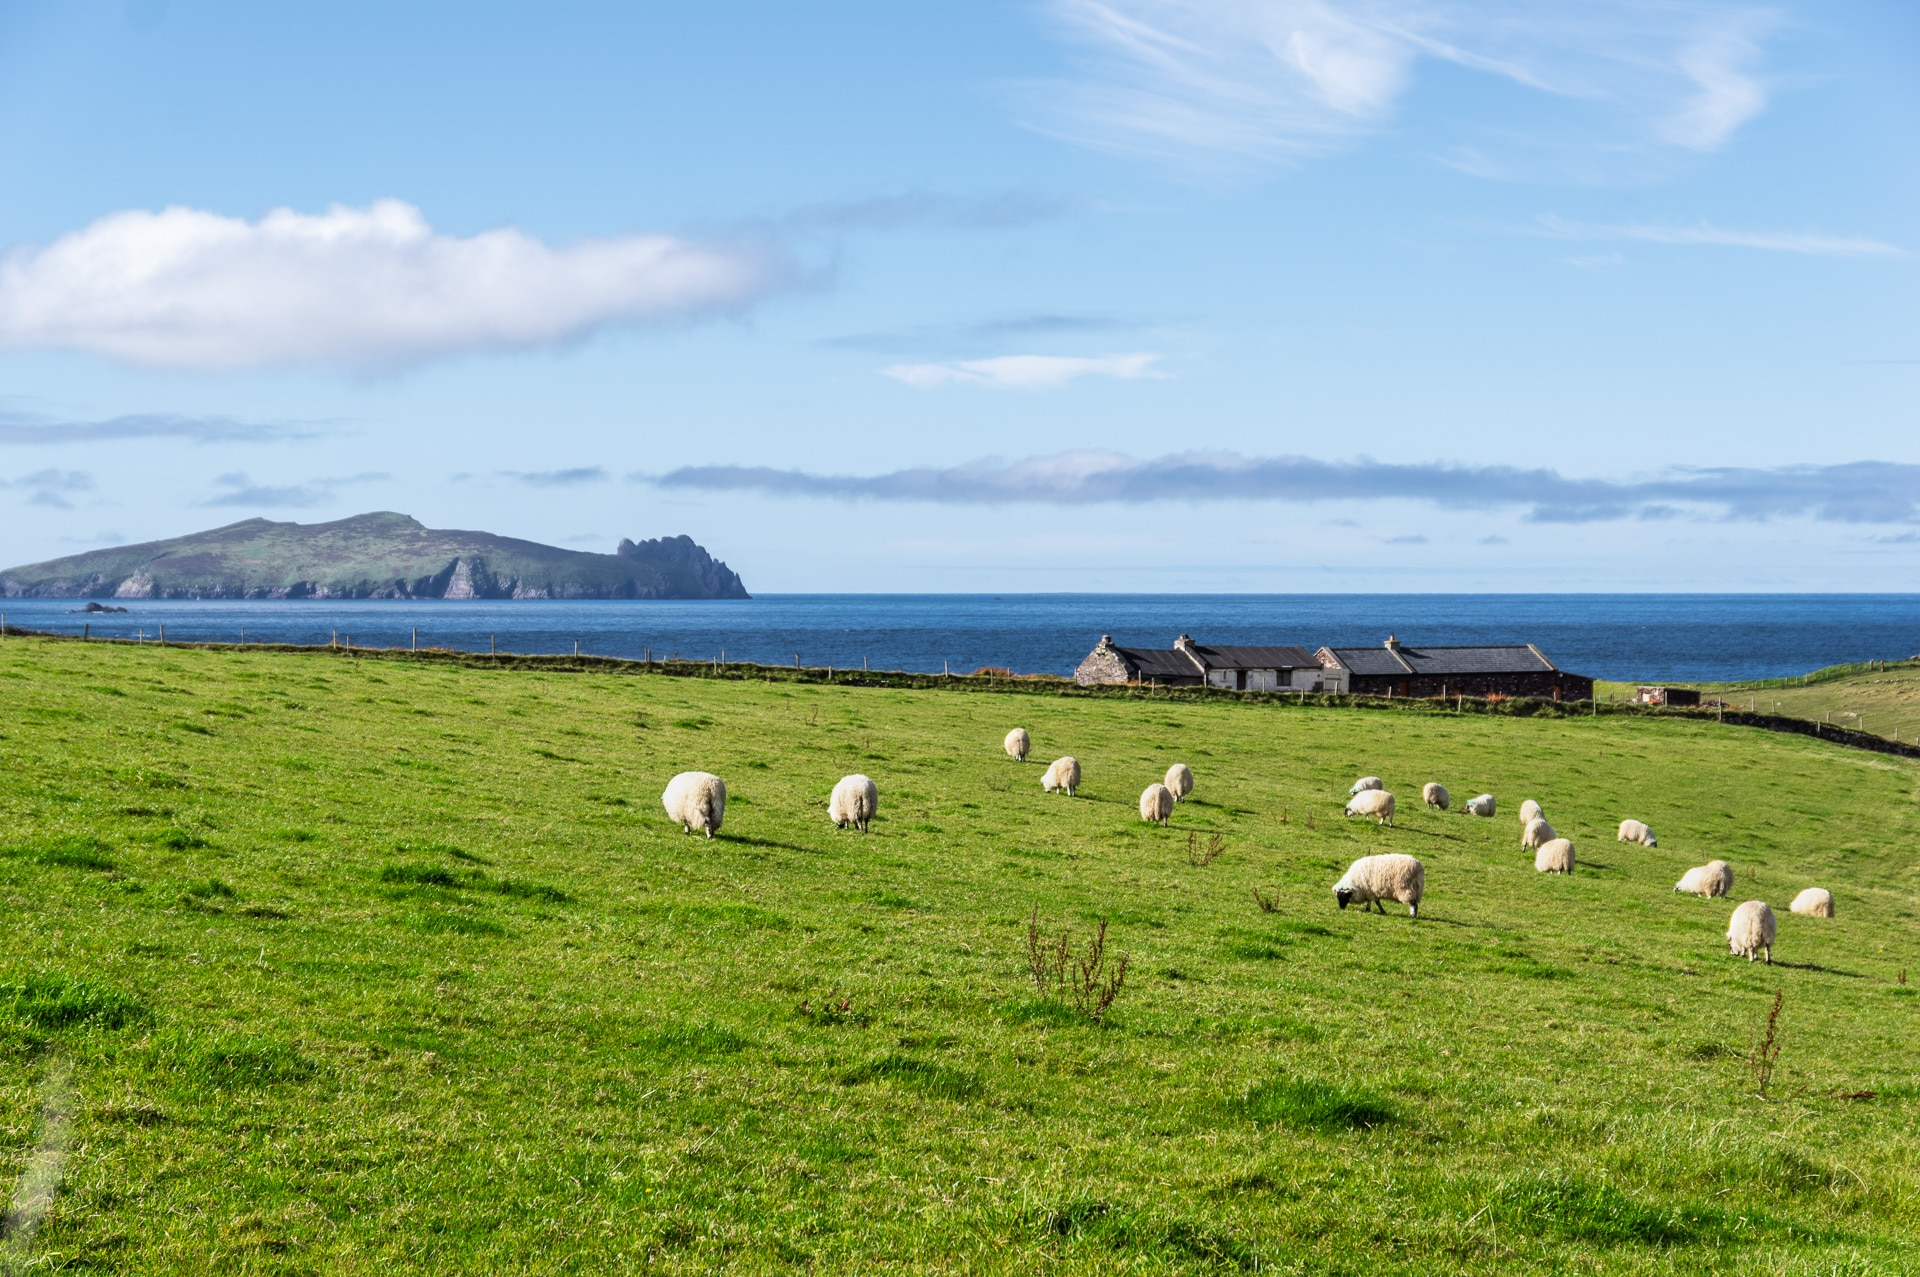 sheep on a meadow with sleeping island giant in the background